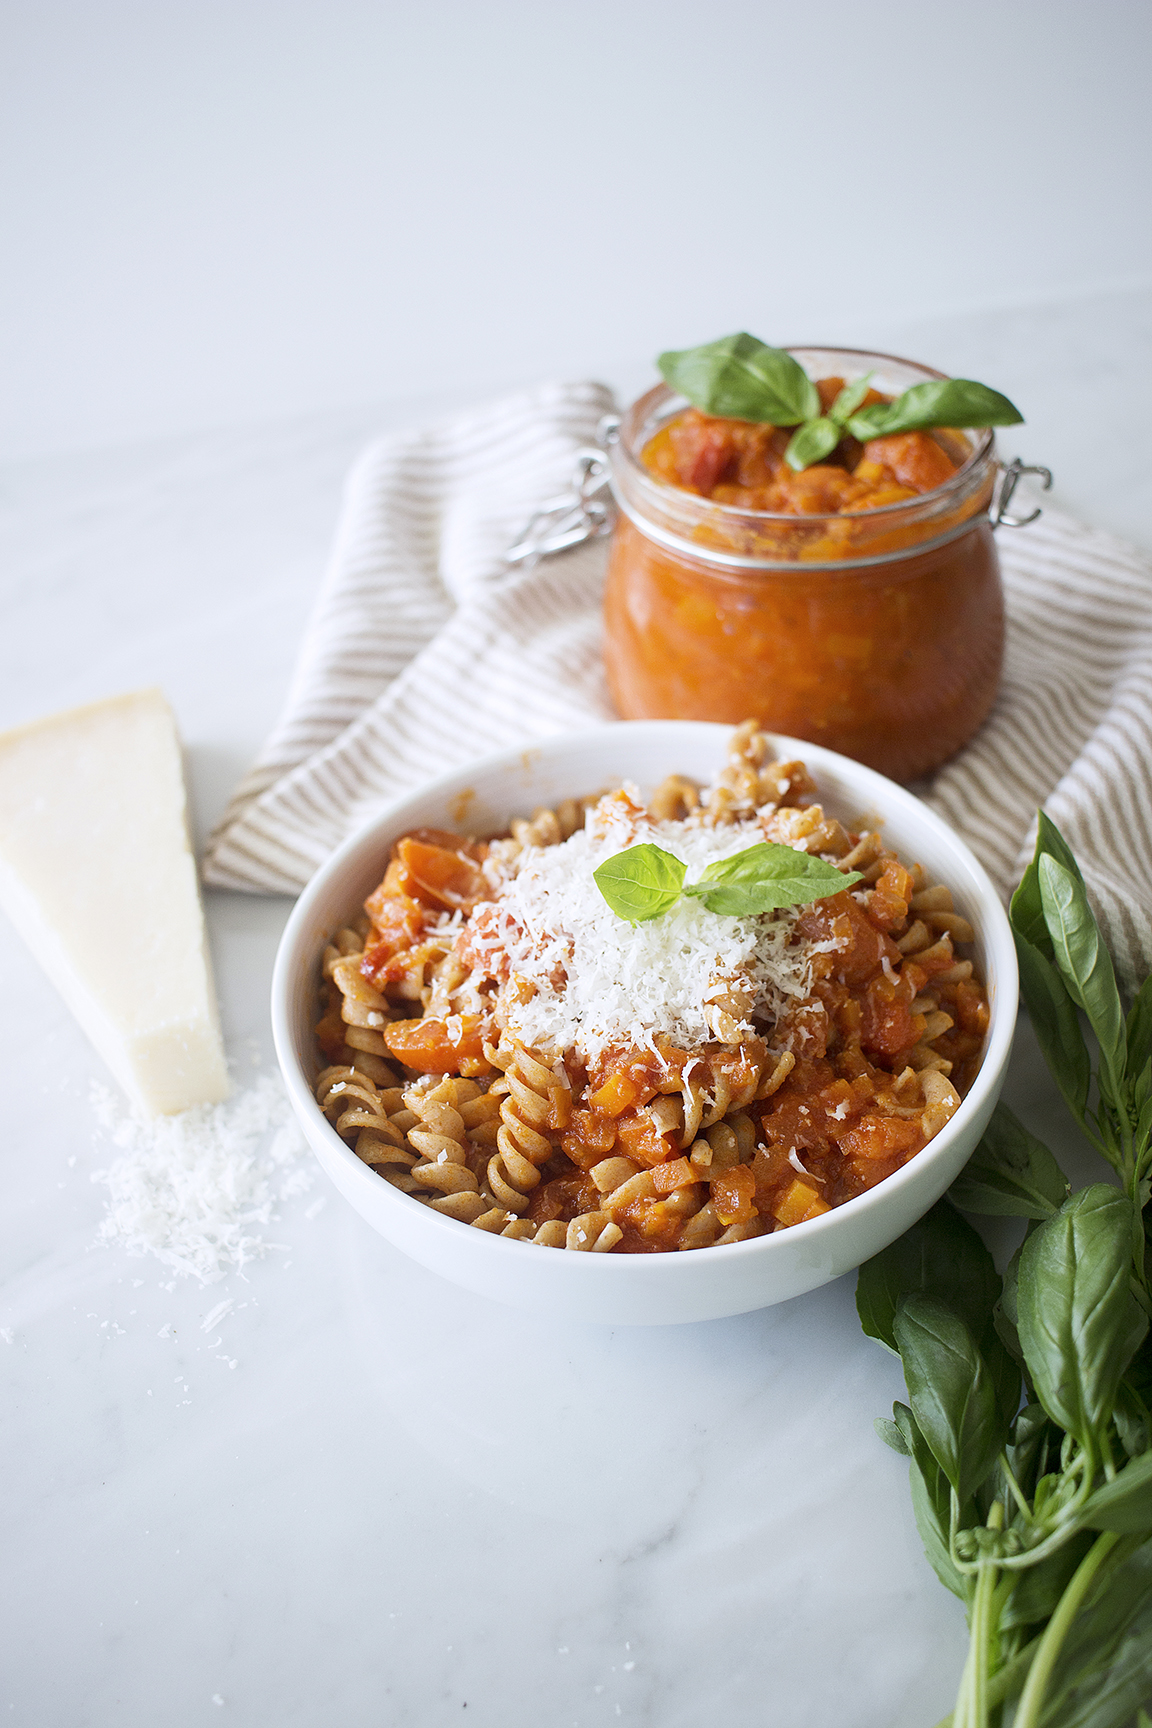 My go-to tomato sauce recipe